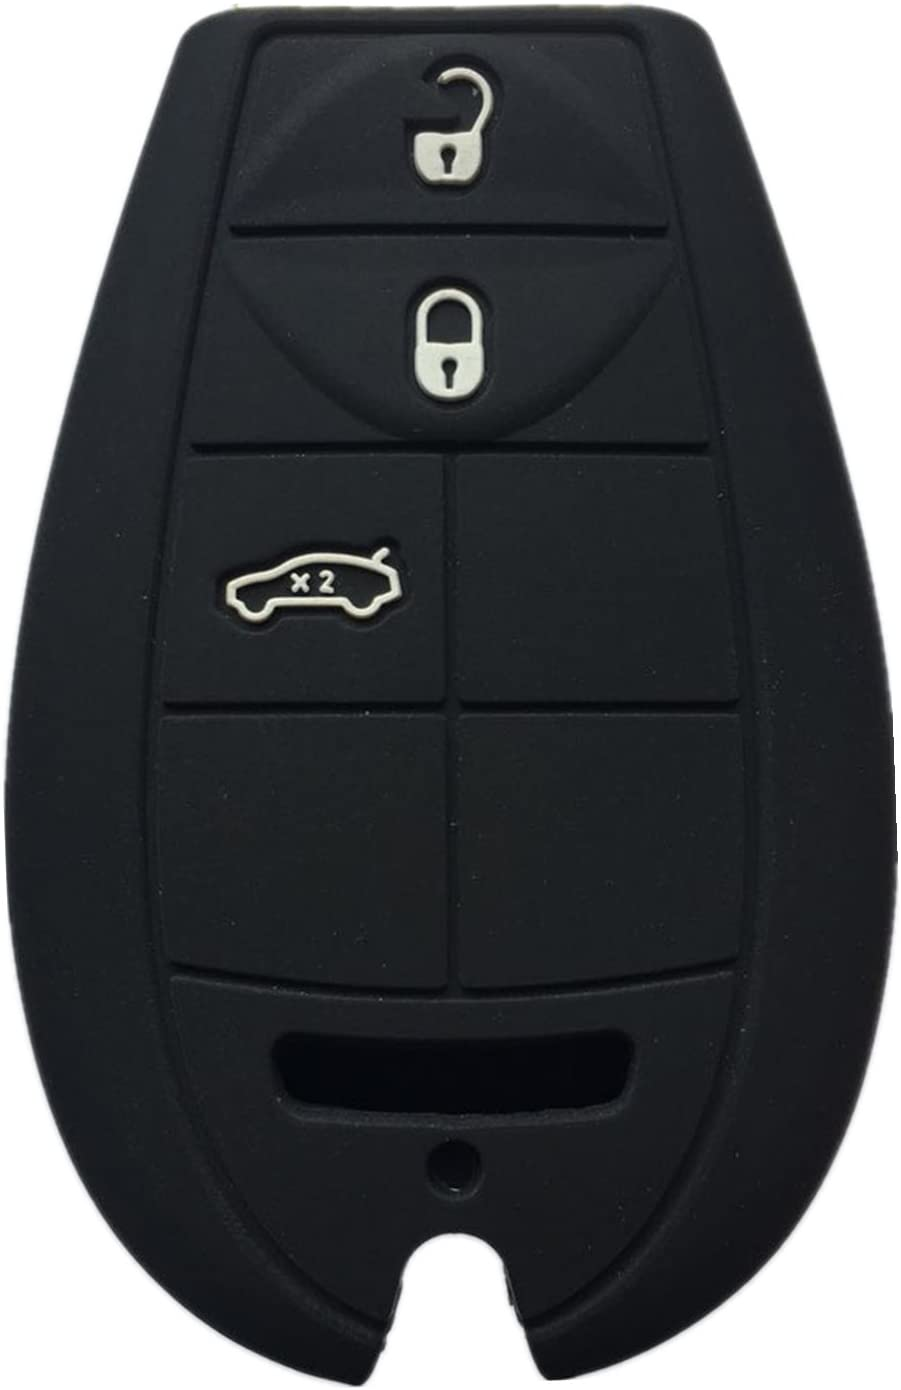 Rpkey Silicone Keyless Entry Remote Control Key Fob Cover Case protector For Chrysler 300 Dodge Challenger Charger Journey Magnum M3N5WY783X IYZ-C01C